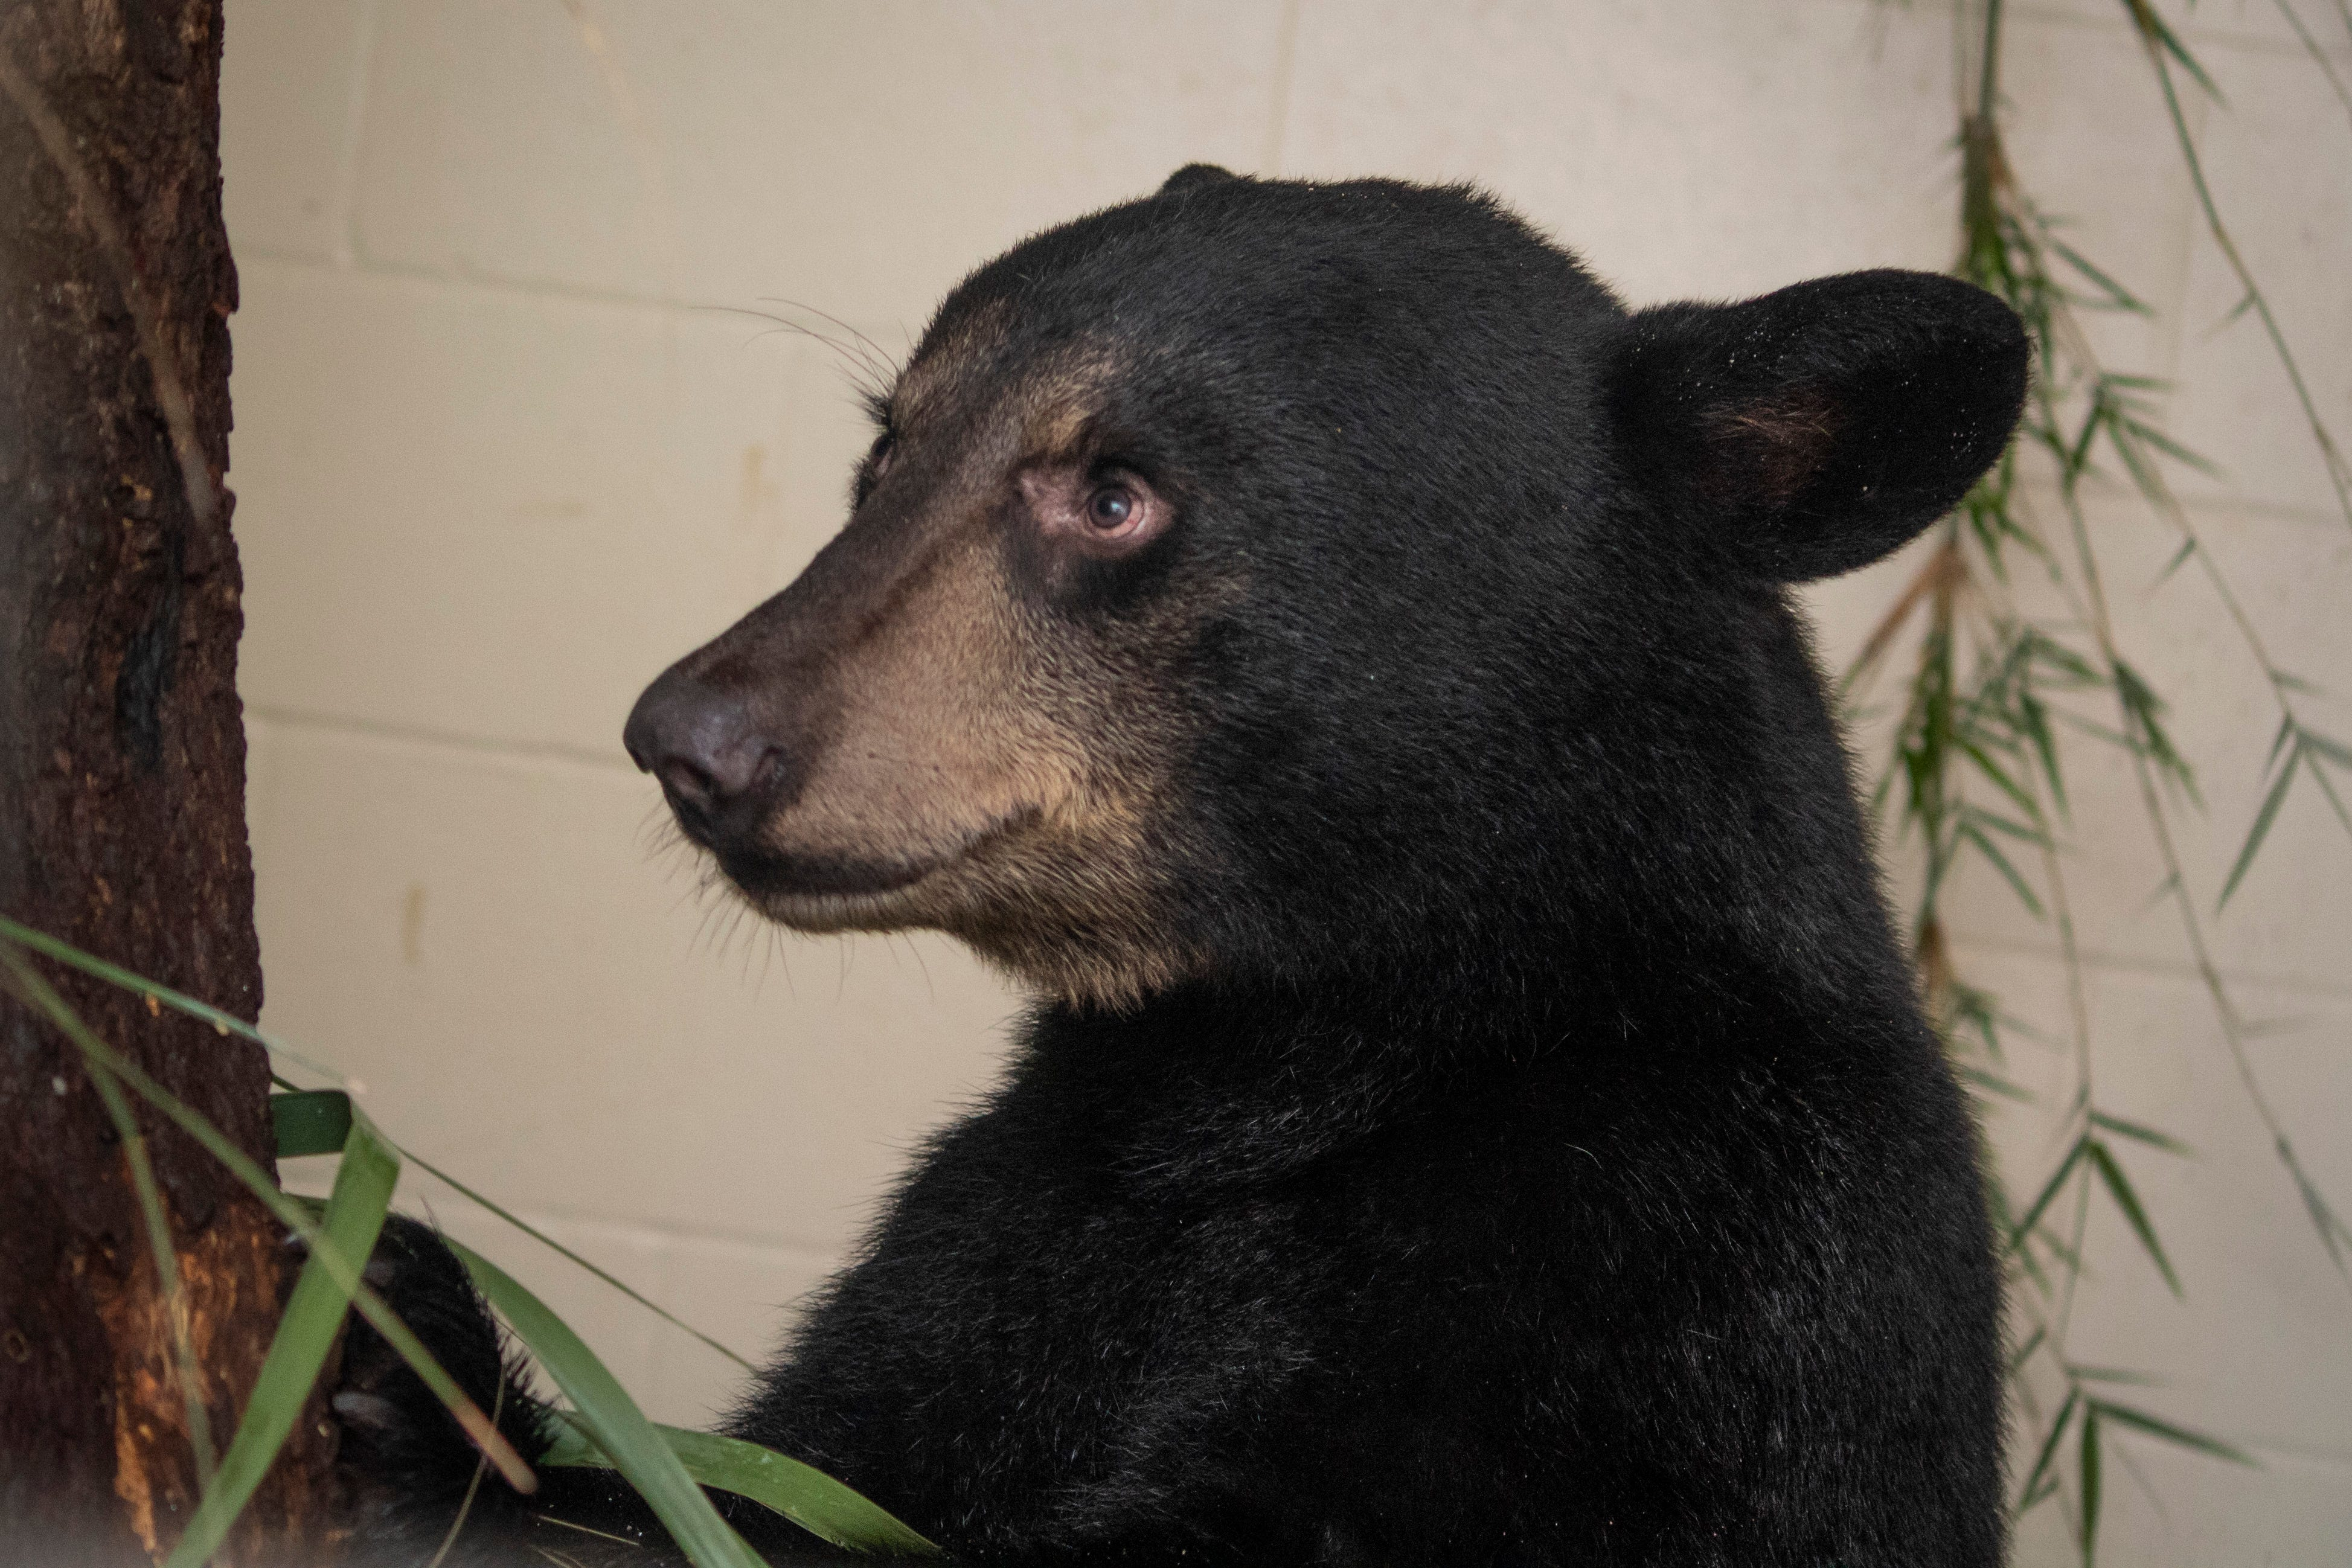 9c6e0ed9-1ff6-4d35-9ebb-1f0aeb35a3c8-181001053 Oh honey! Rescued bears will find new home at Brevard Zoo